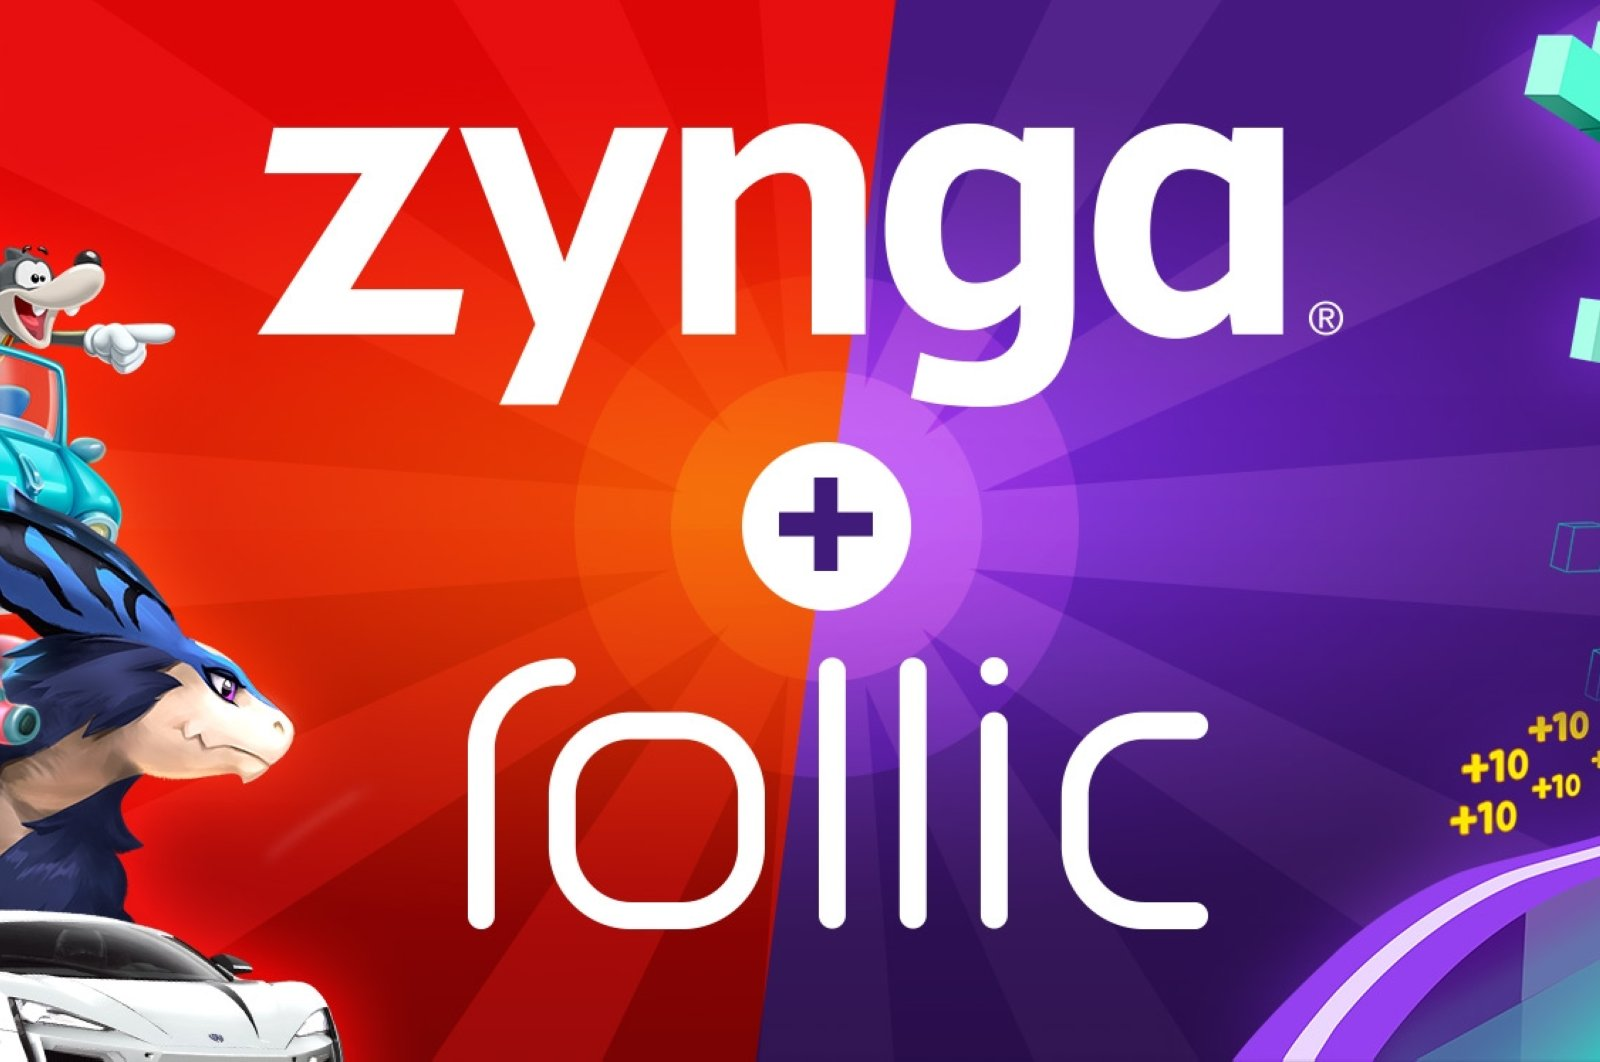 Zynga will acquire the remaining 20% of Rollic at valuations based on specific profitability goals over the next three years.